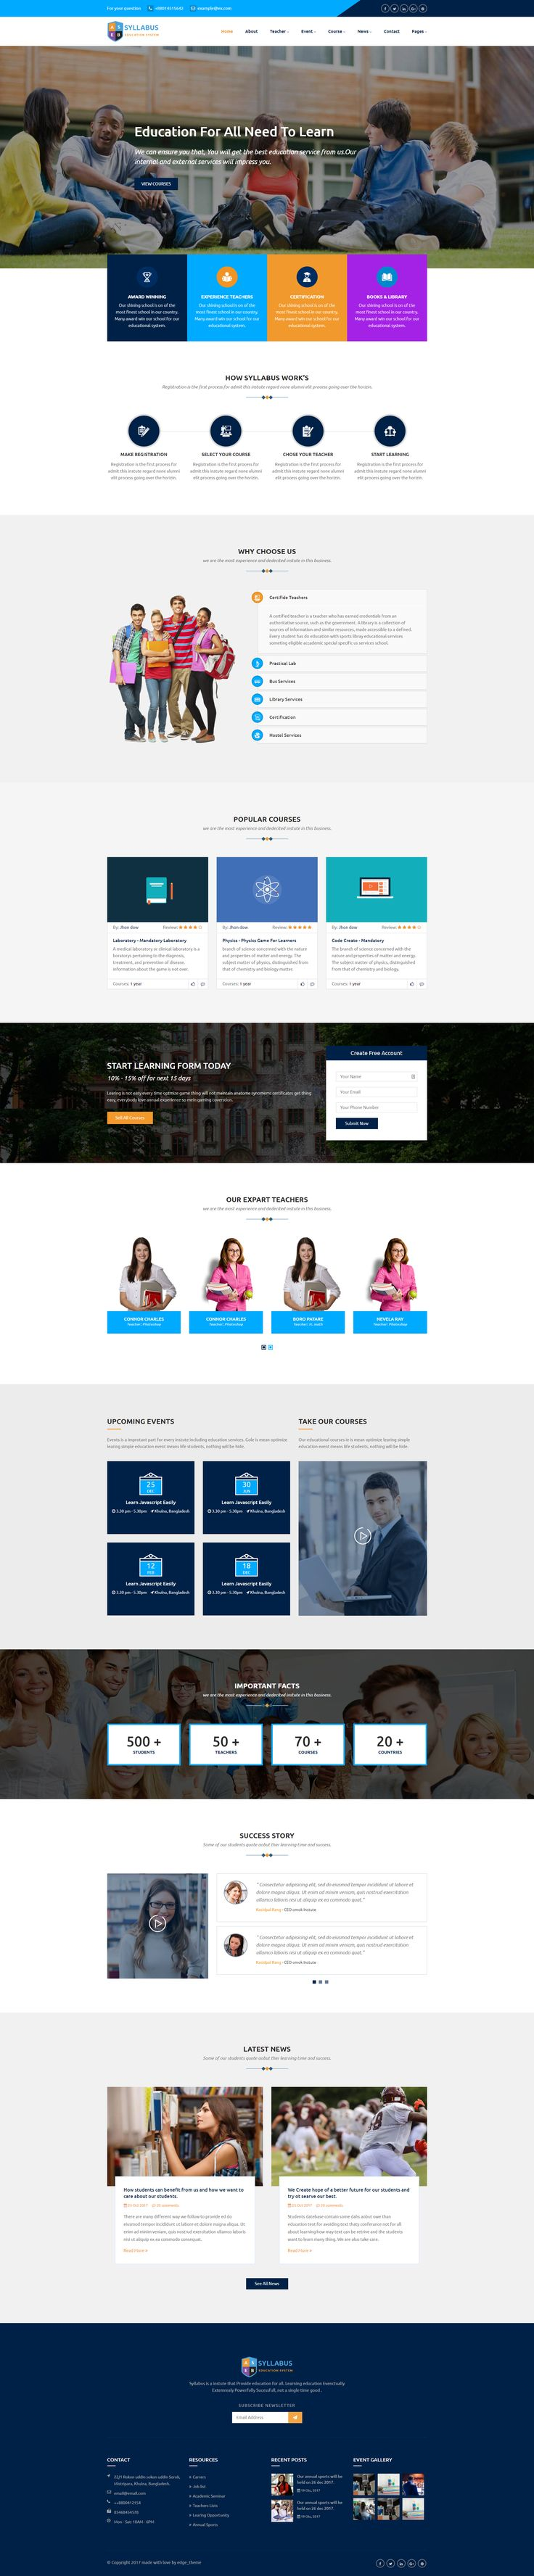 Syllabus is a Education Course HTML5 Template with predefined web elements which helps you to build your own site.This template is suitable for Education Course Learning Management System website.Syllabus template has a fully responsive layout. It fits perfectly on various displays and resolutions from regular desktop screens to tablets, iPads, iPhones and small mobile devices.This template is built with Bootstrap 3.